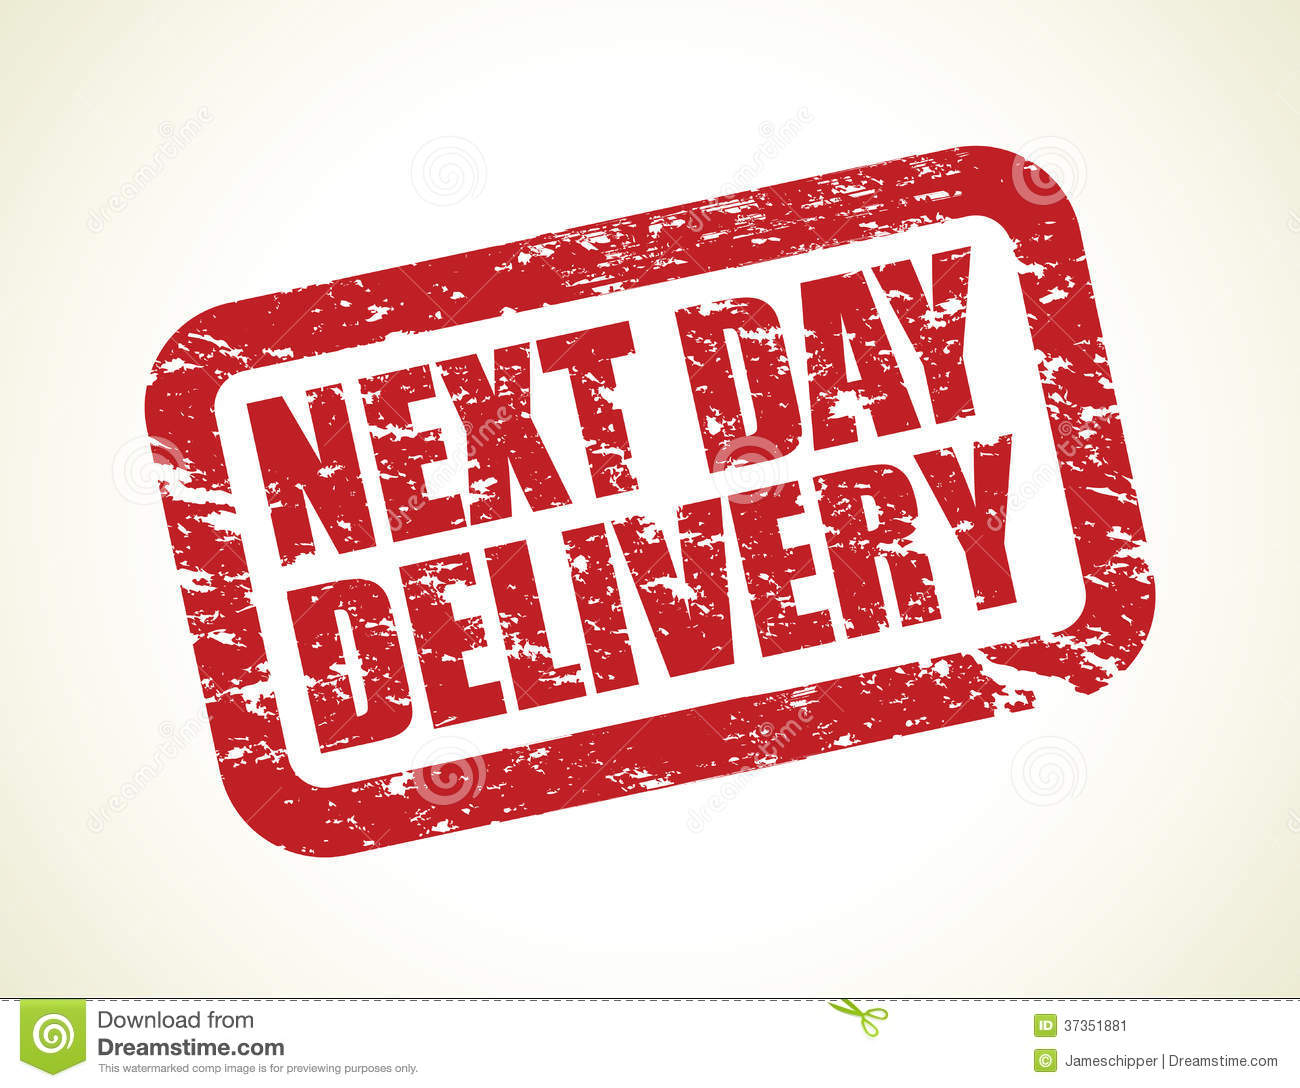 Priority Mail Express Overnight Delivery Guarantee 1 Our fastest domestic service, with limited exceptions, available days a year, with a money-back guarantee 1 and delivery shipping to most U.S. addresses, including PO Boxes ™ 2.